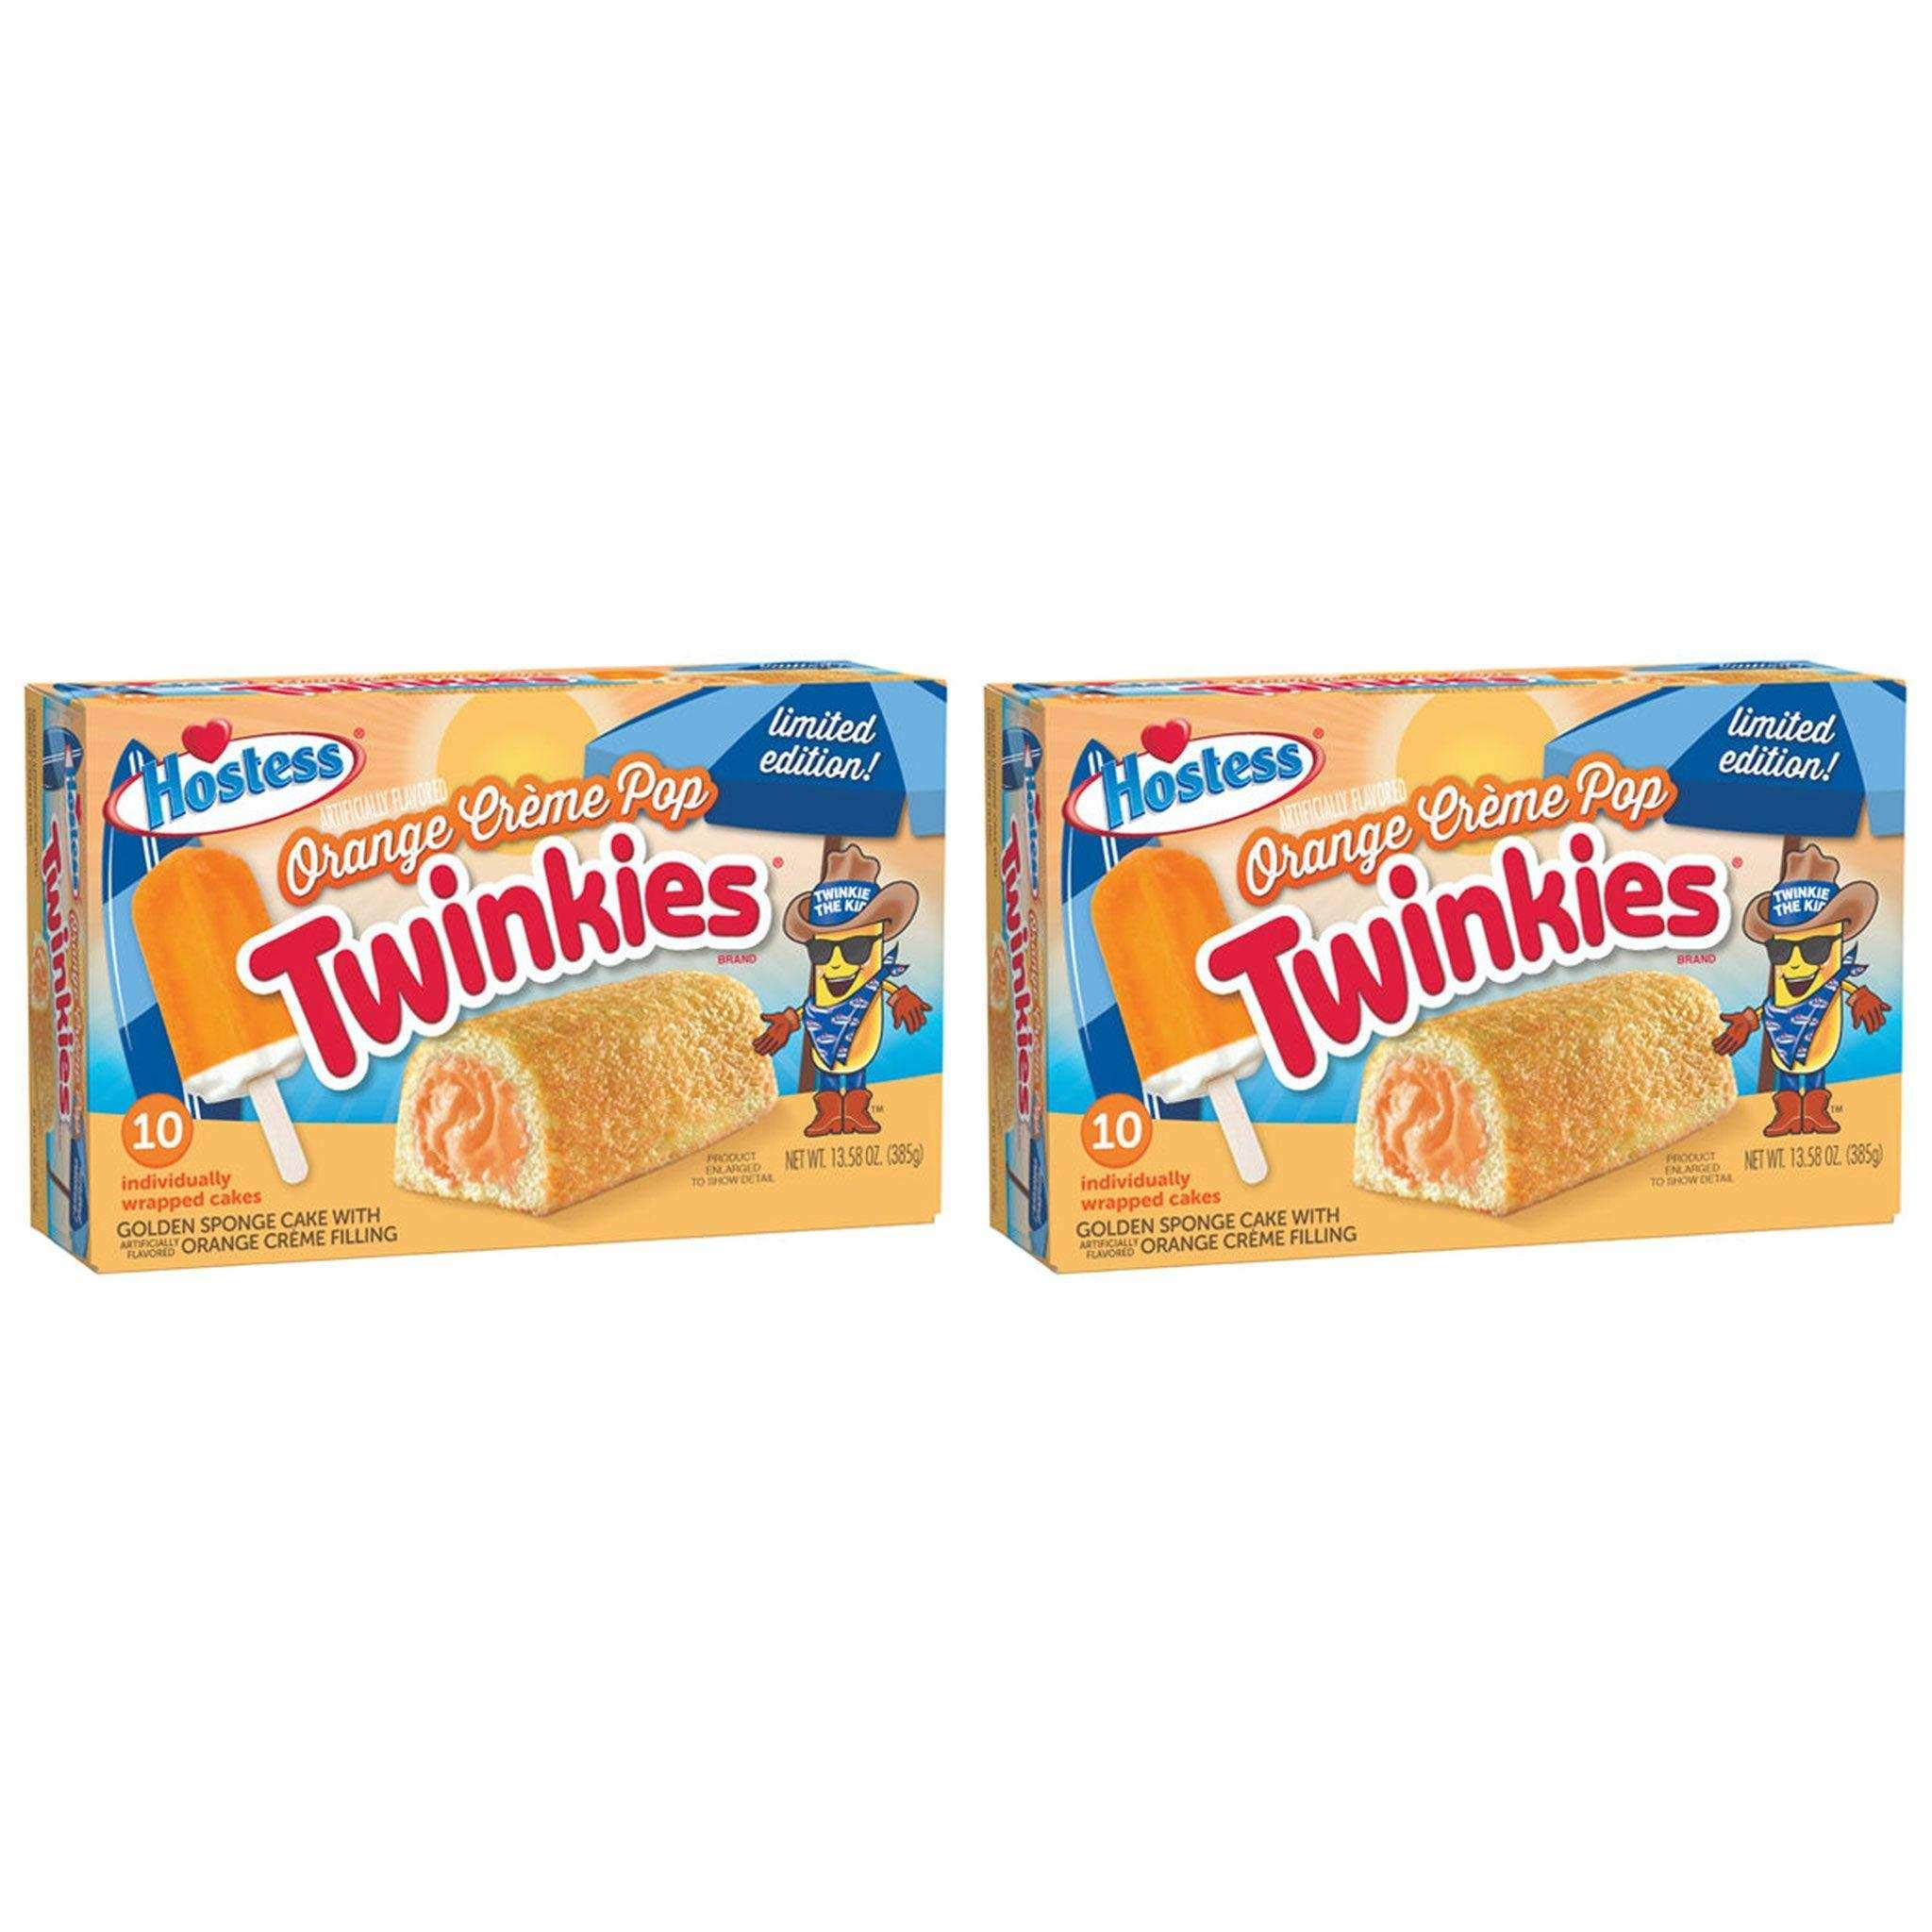 Twinkies Orange Creme Pop by Hostess, Limited Edition (Pack of 2) by Generic